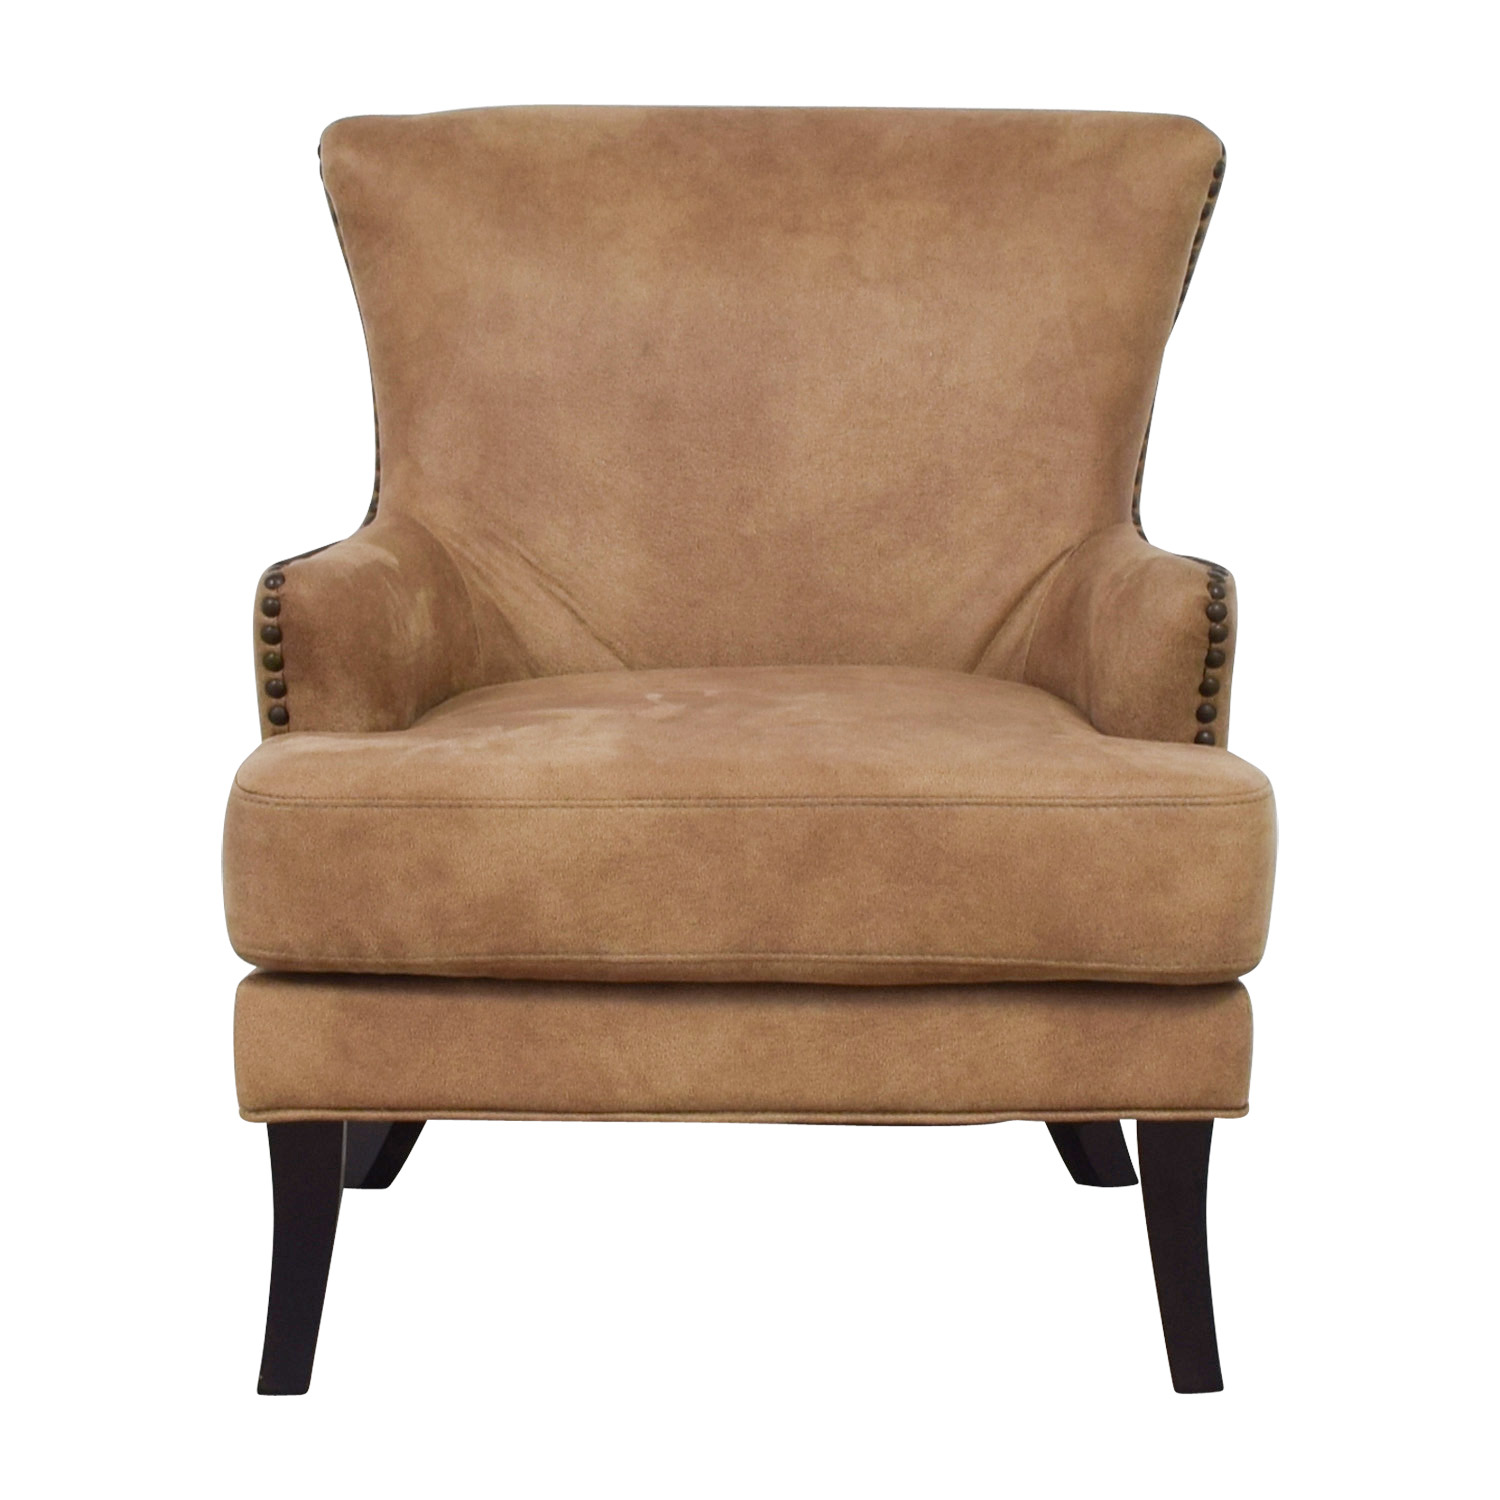 Joss & Main Joss & Main Nola Brown Nailhead Arm Chair coupon